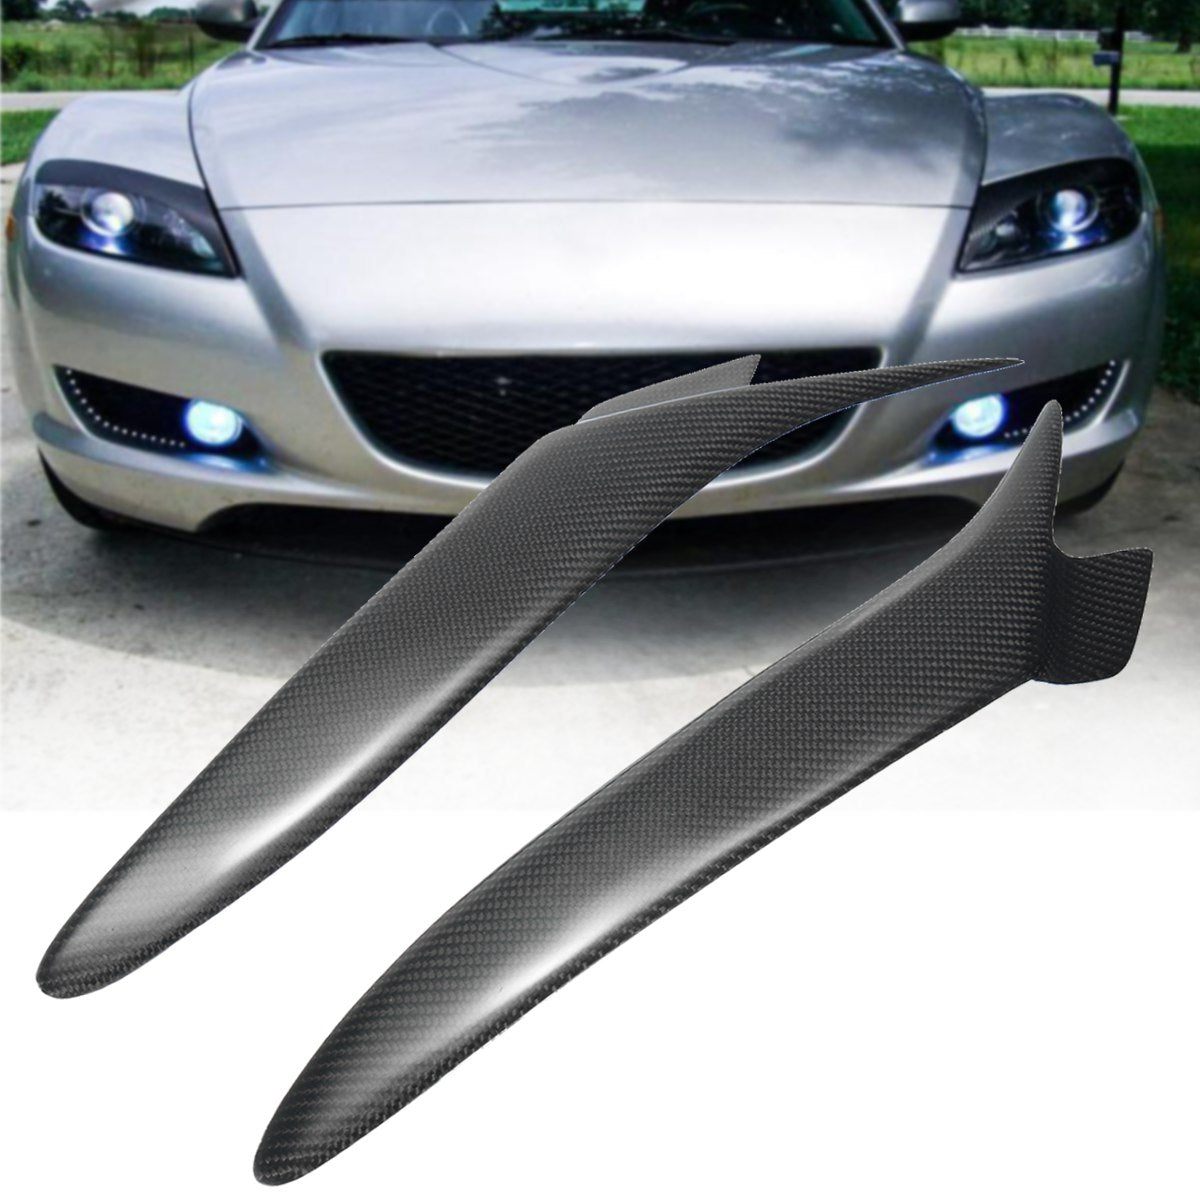 Car Front Headlight Eyebrows Eyelids Cover Carbon Fiber Pattern for Mazda RX 8 RX8 2004-2008 Car Styling Exterior Accessories